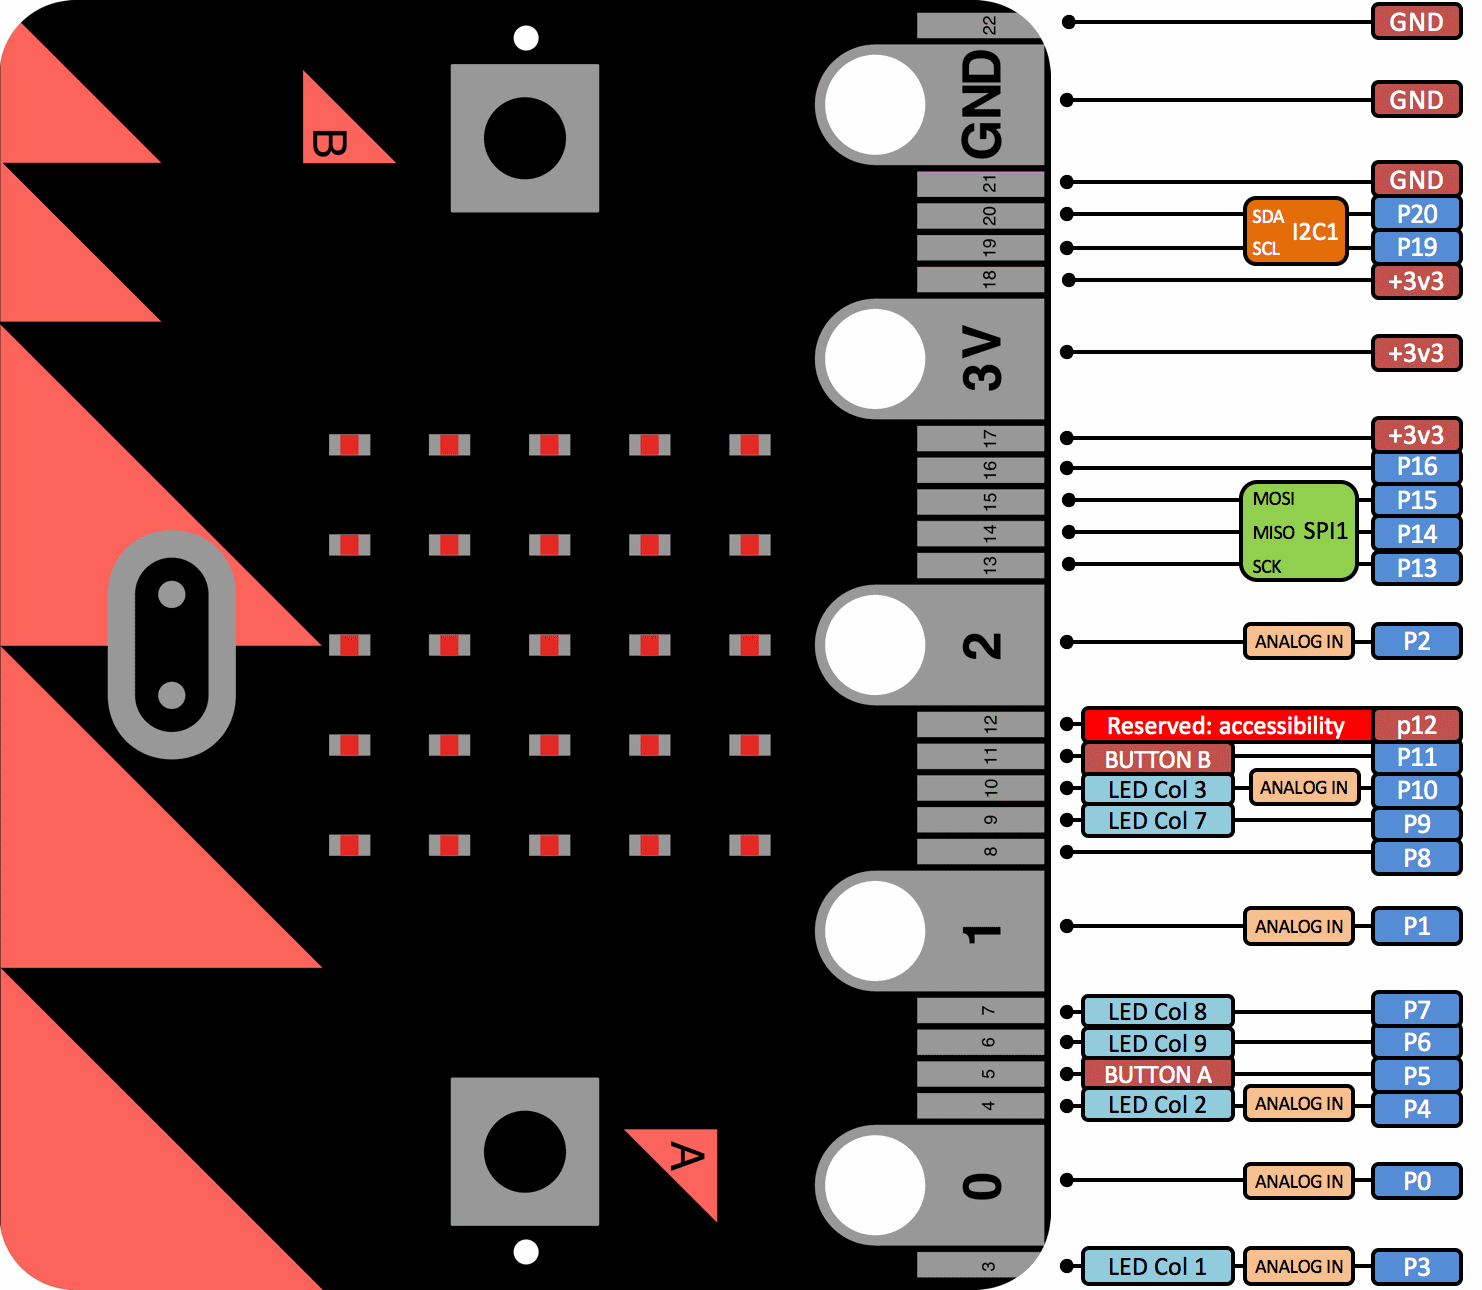 adafruit_products_pins-0.png